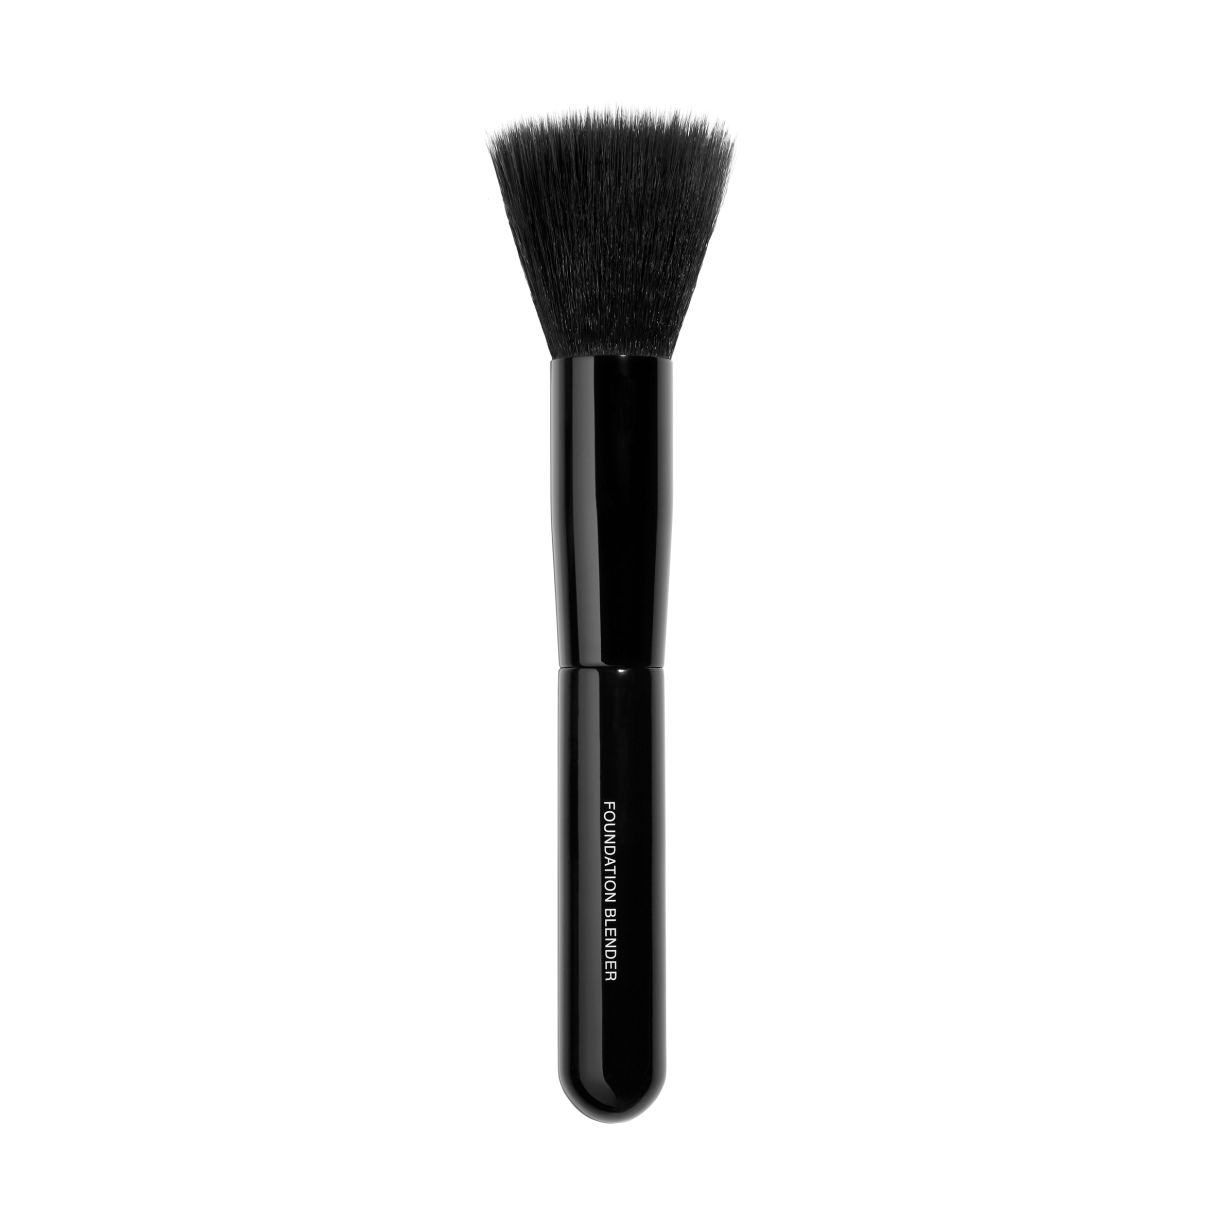 FOUNDATION-BLENDING BRUSH 調和粉底掃 1pce